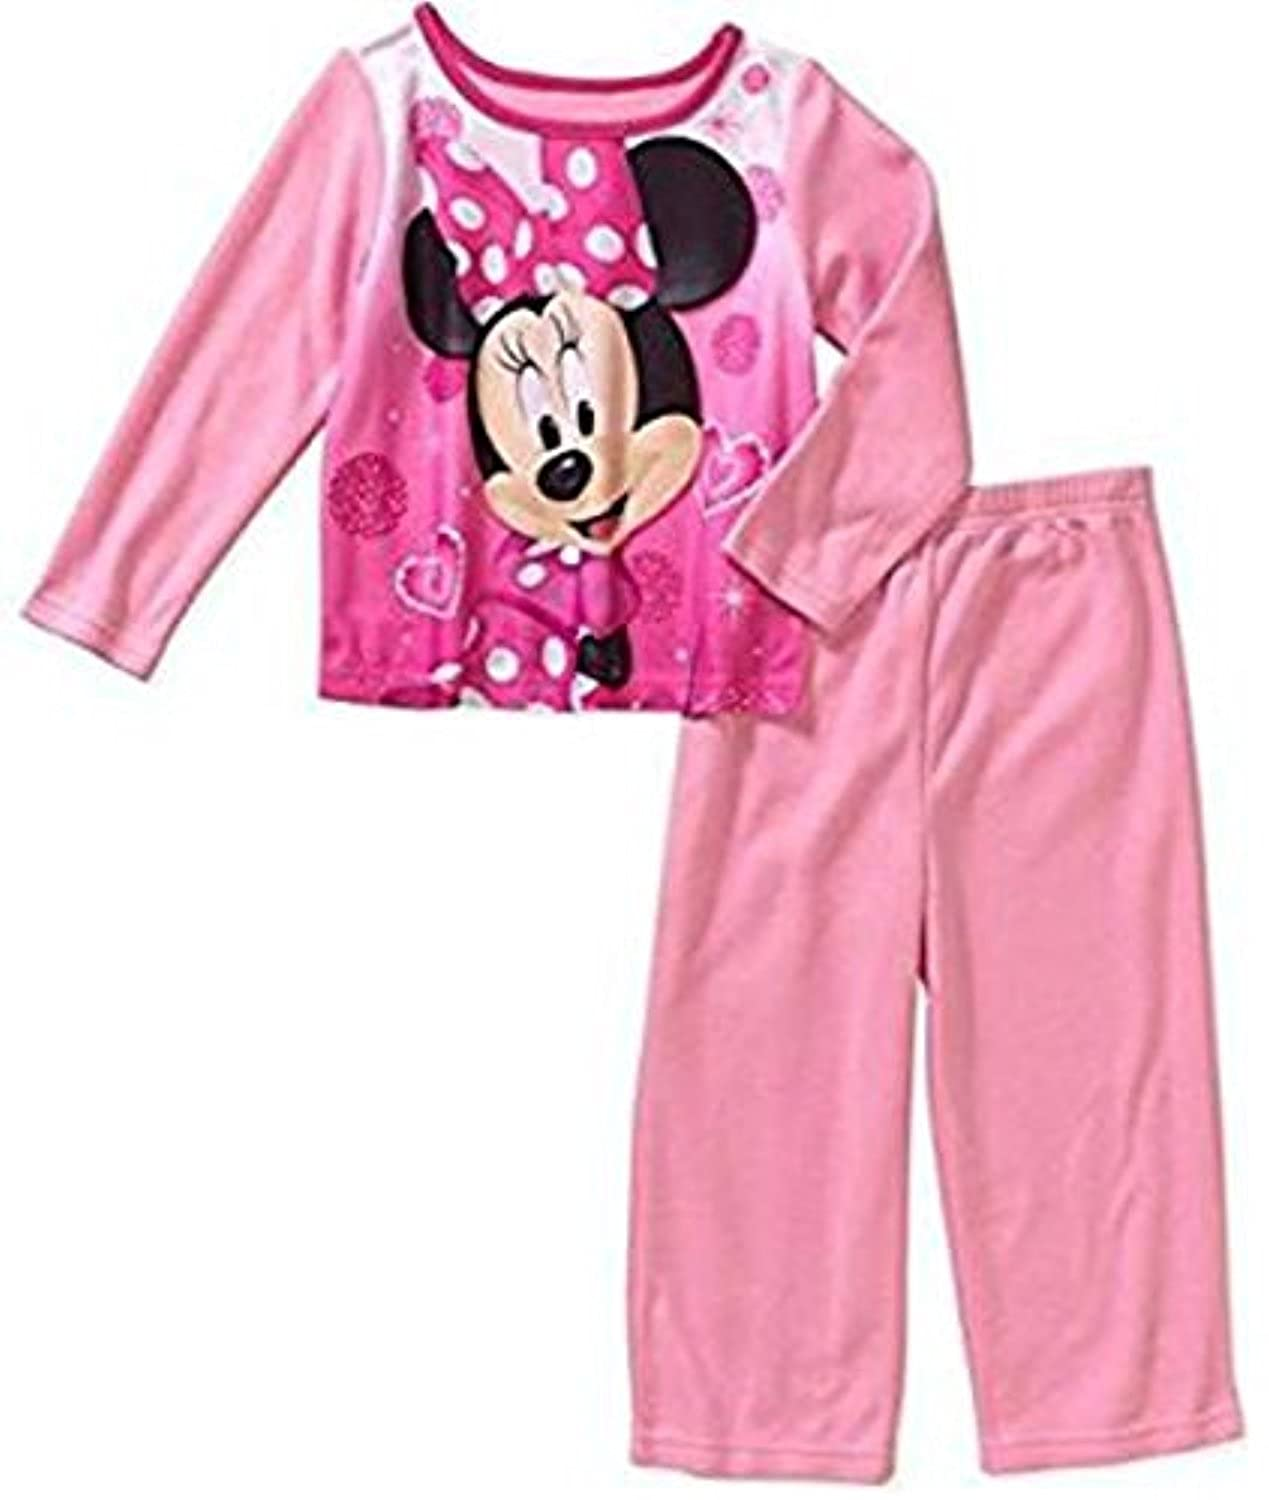 12 Months Disney Minnie Mouse Girls 2 Piece Sleepwear Pink Pajama Pant Set